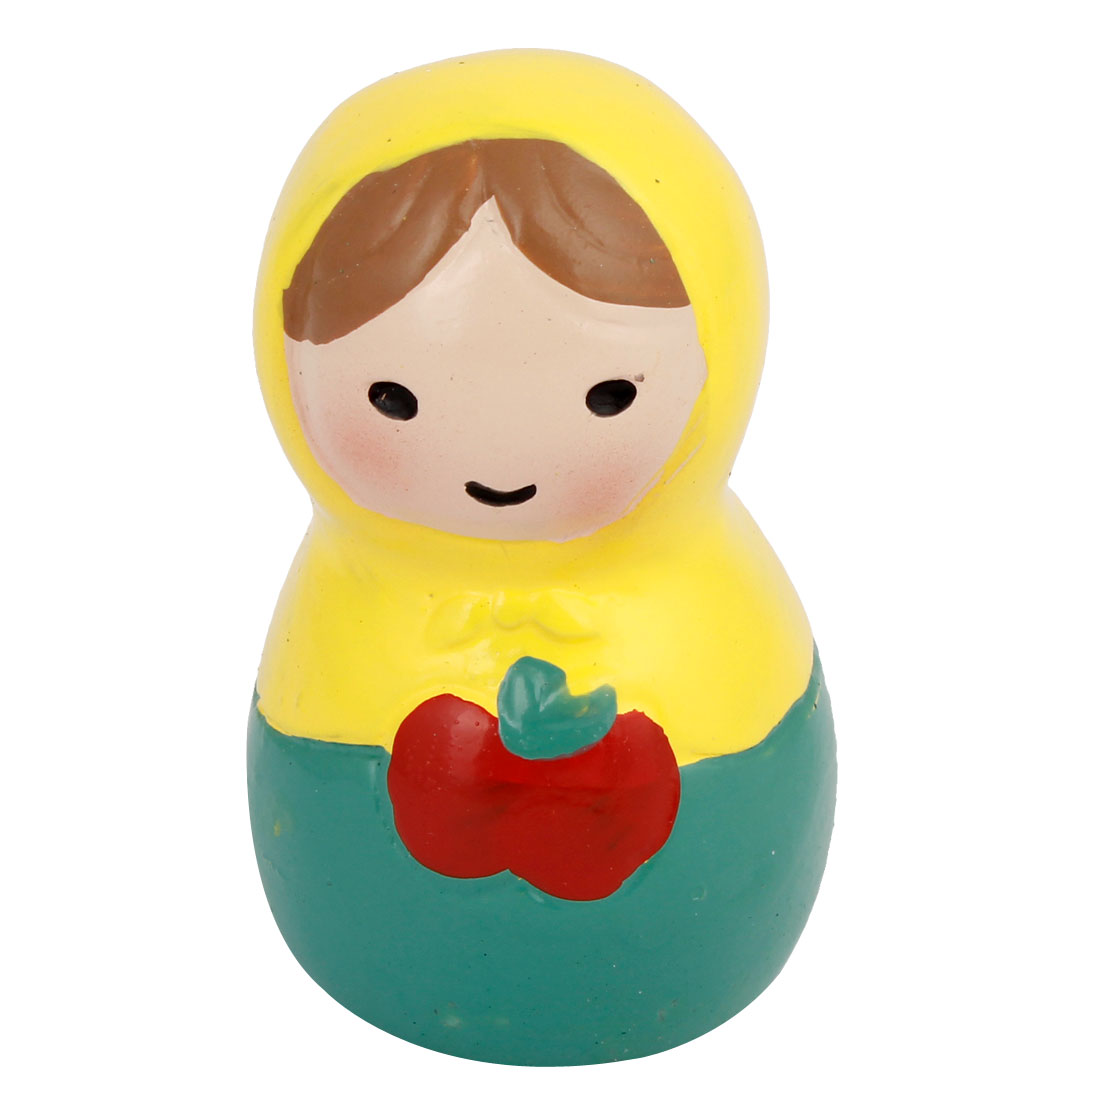 Cyan Yellow Resin Handmade Craft Russian Doll Decoration